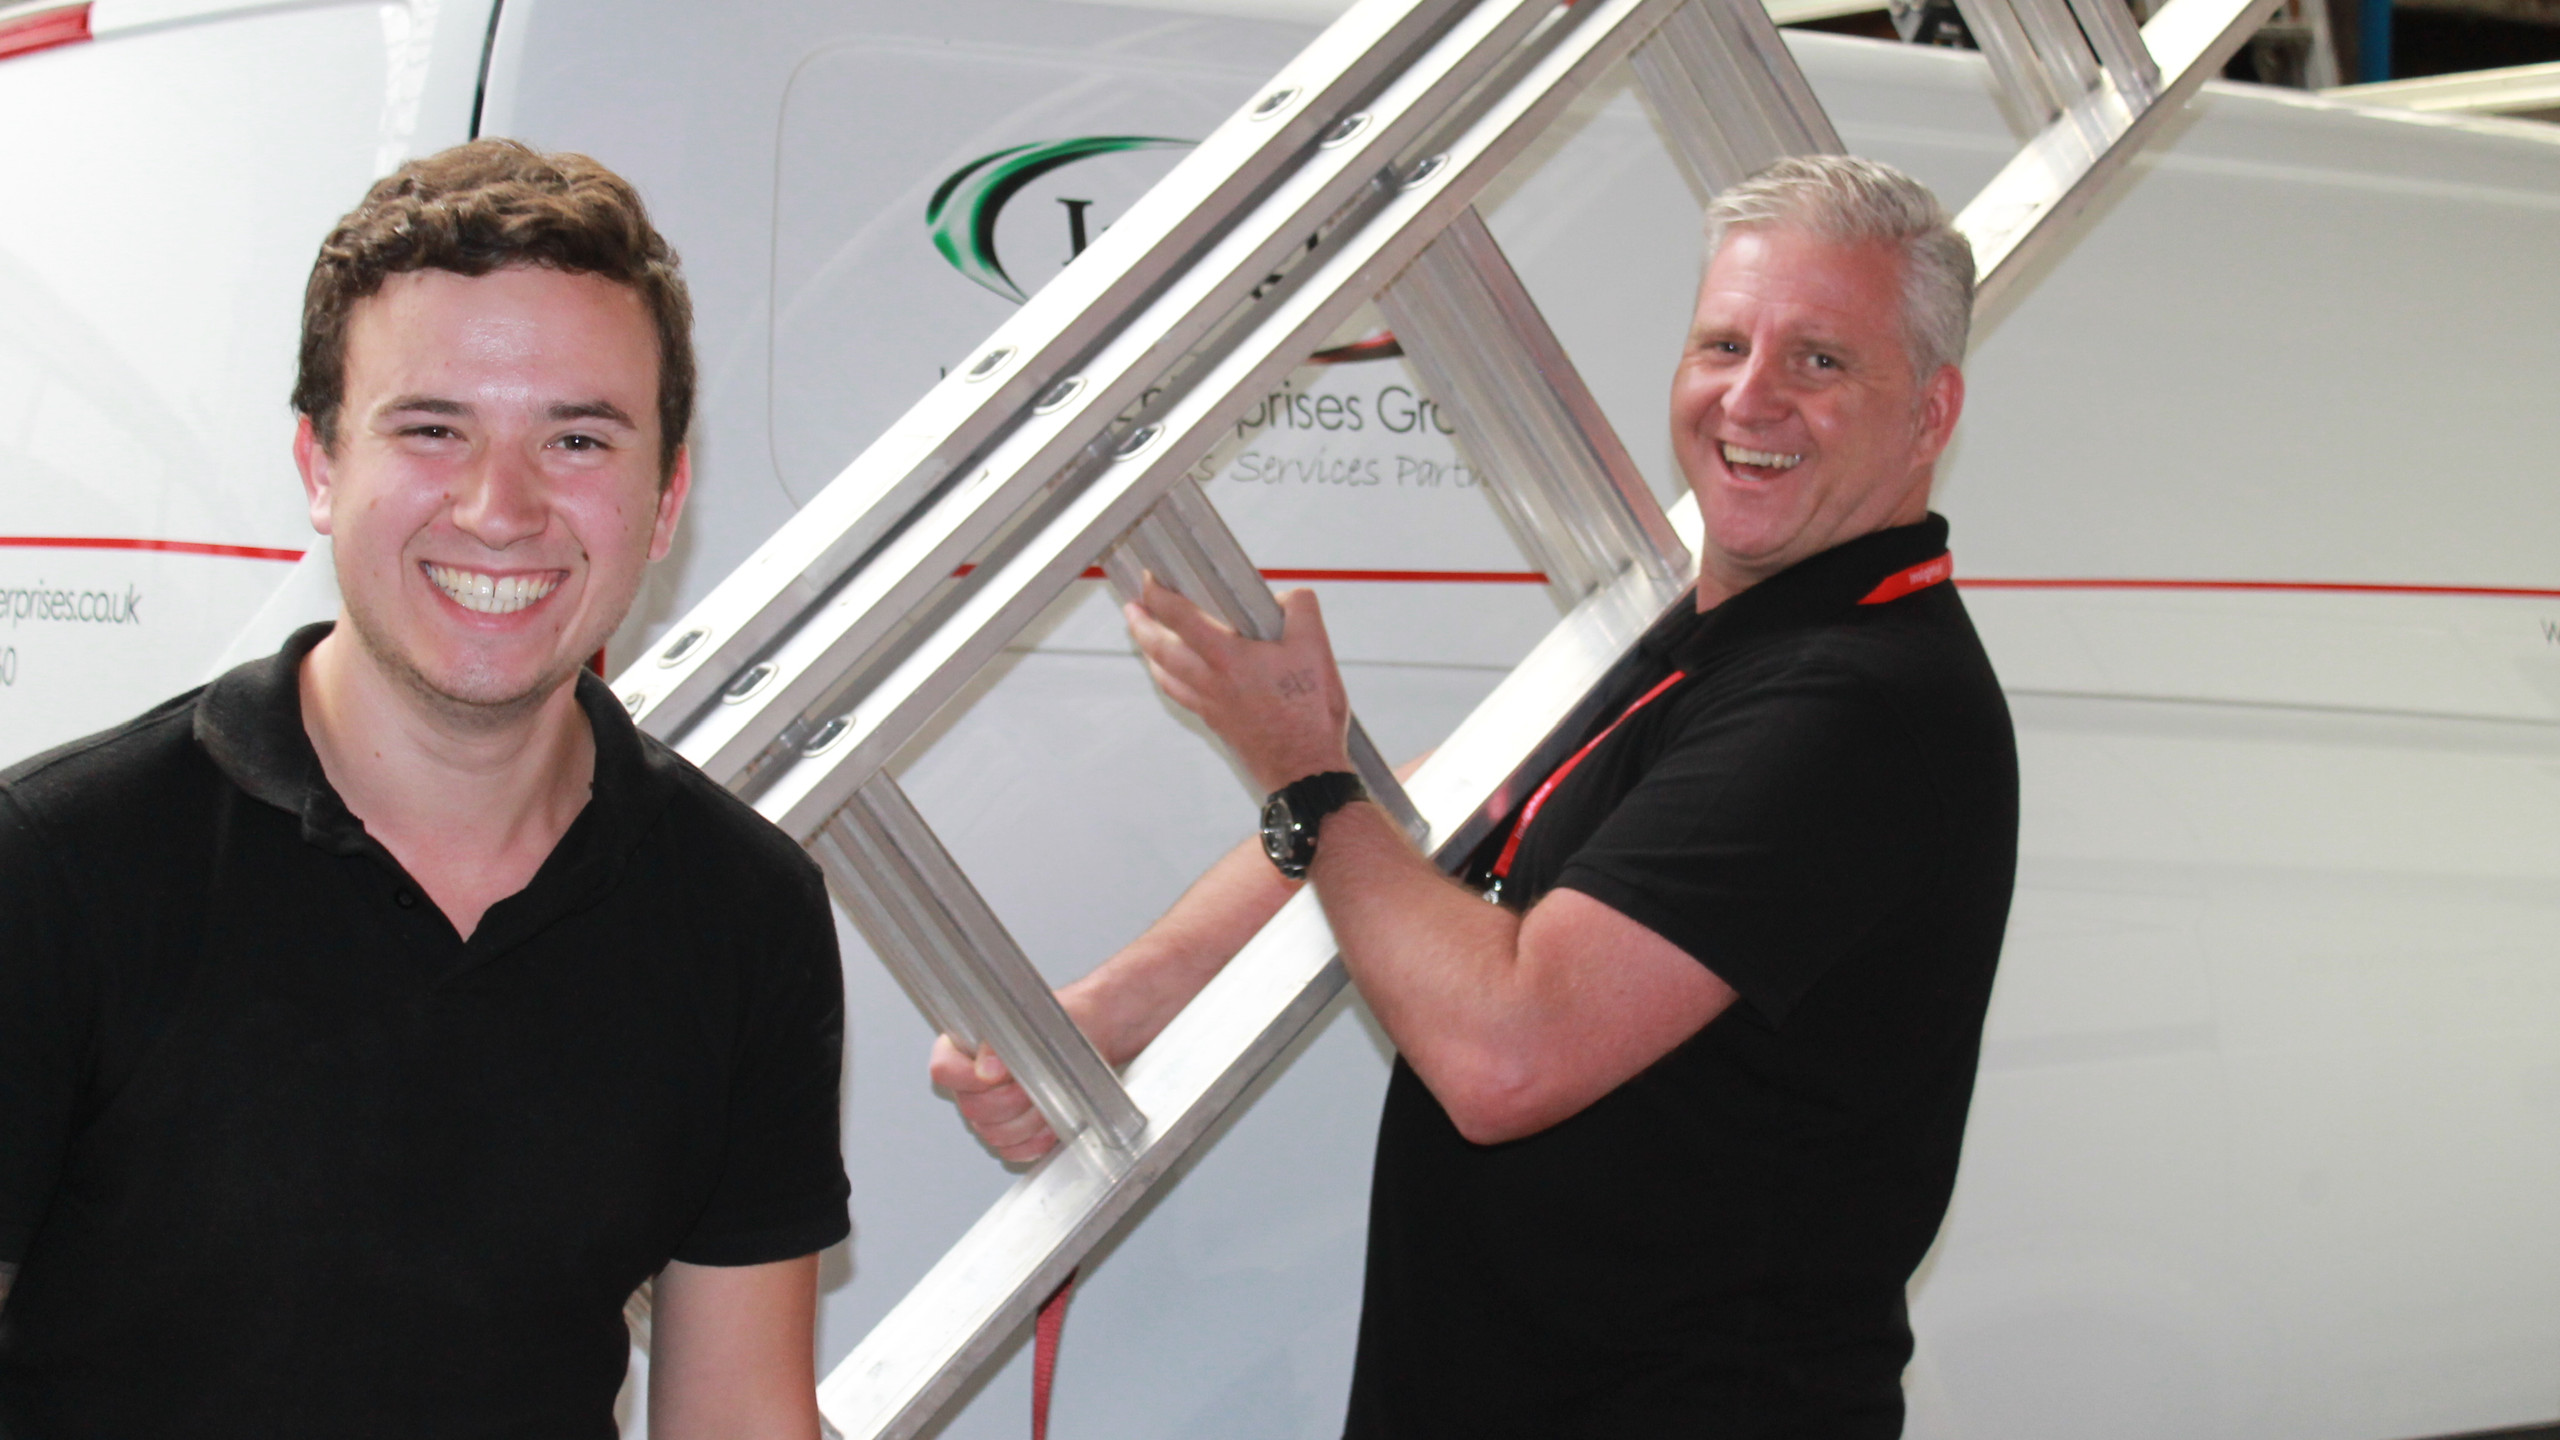 Danny Ratcliffe with Ladders